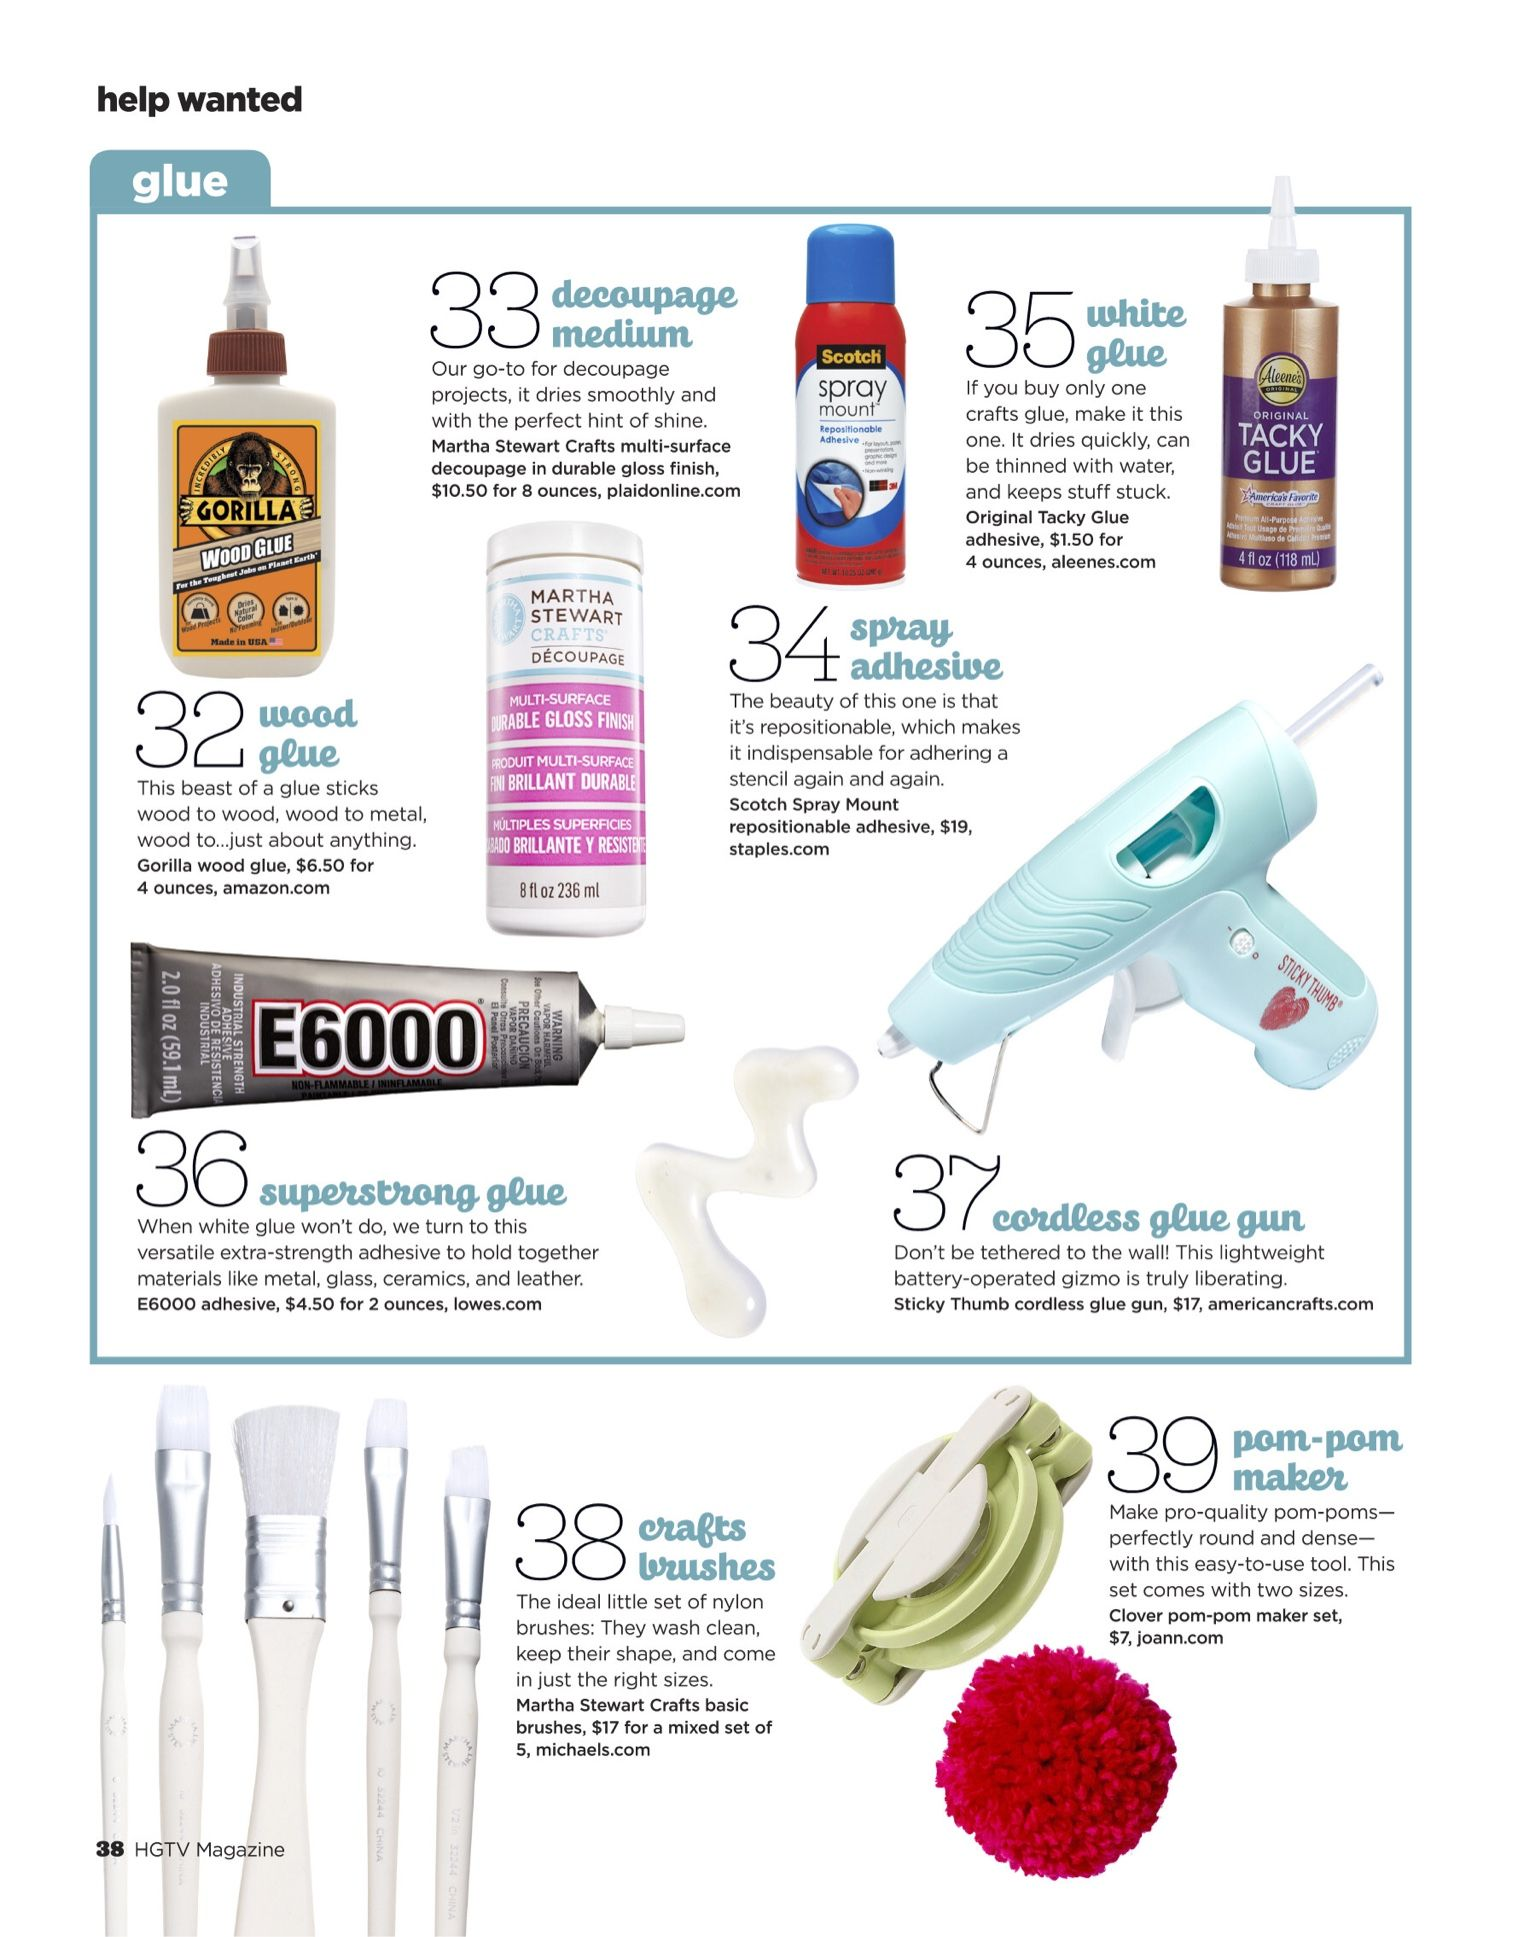 I saw this in the May 2017 issue of HGTV Magazine.   http://bit.ly/1mzvglC